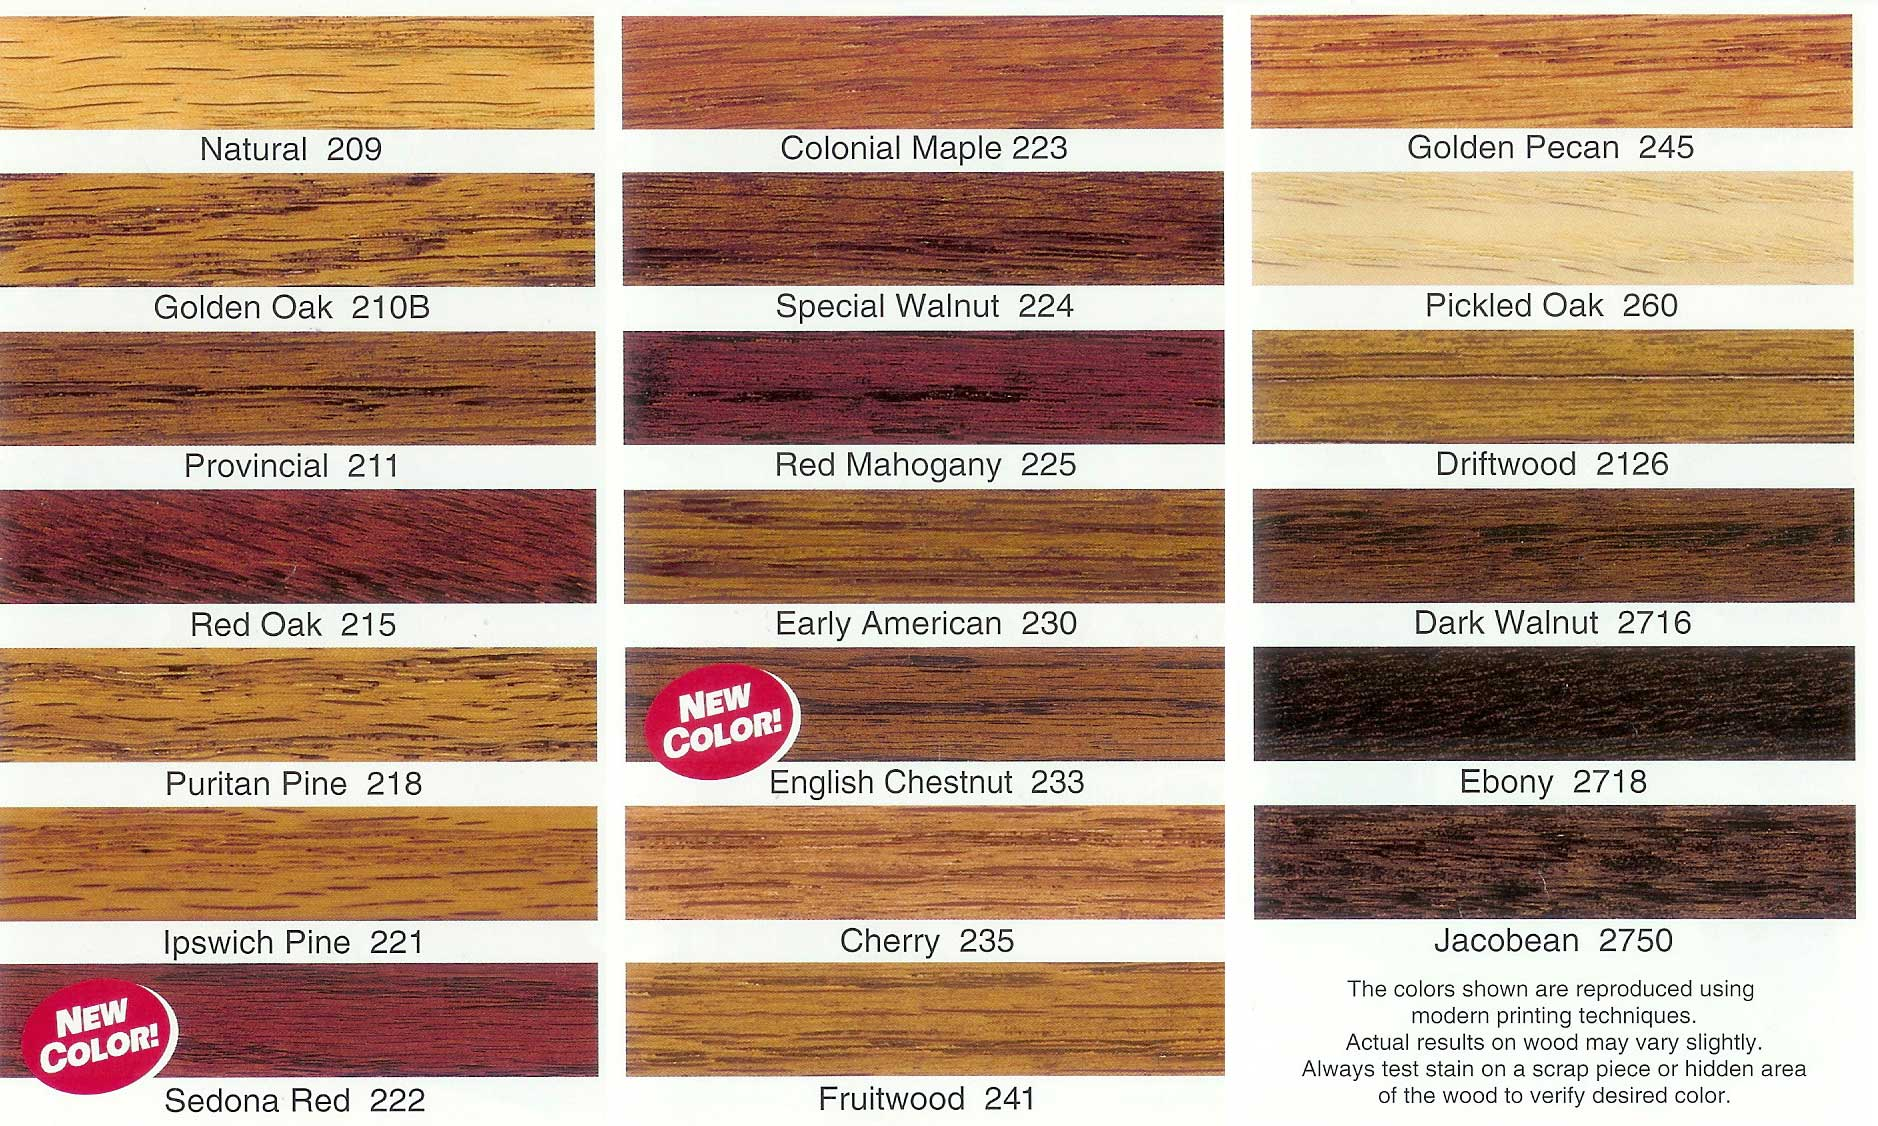 Wood Stain Colors For Red Oak Floor 2015 Home Design Ideas